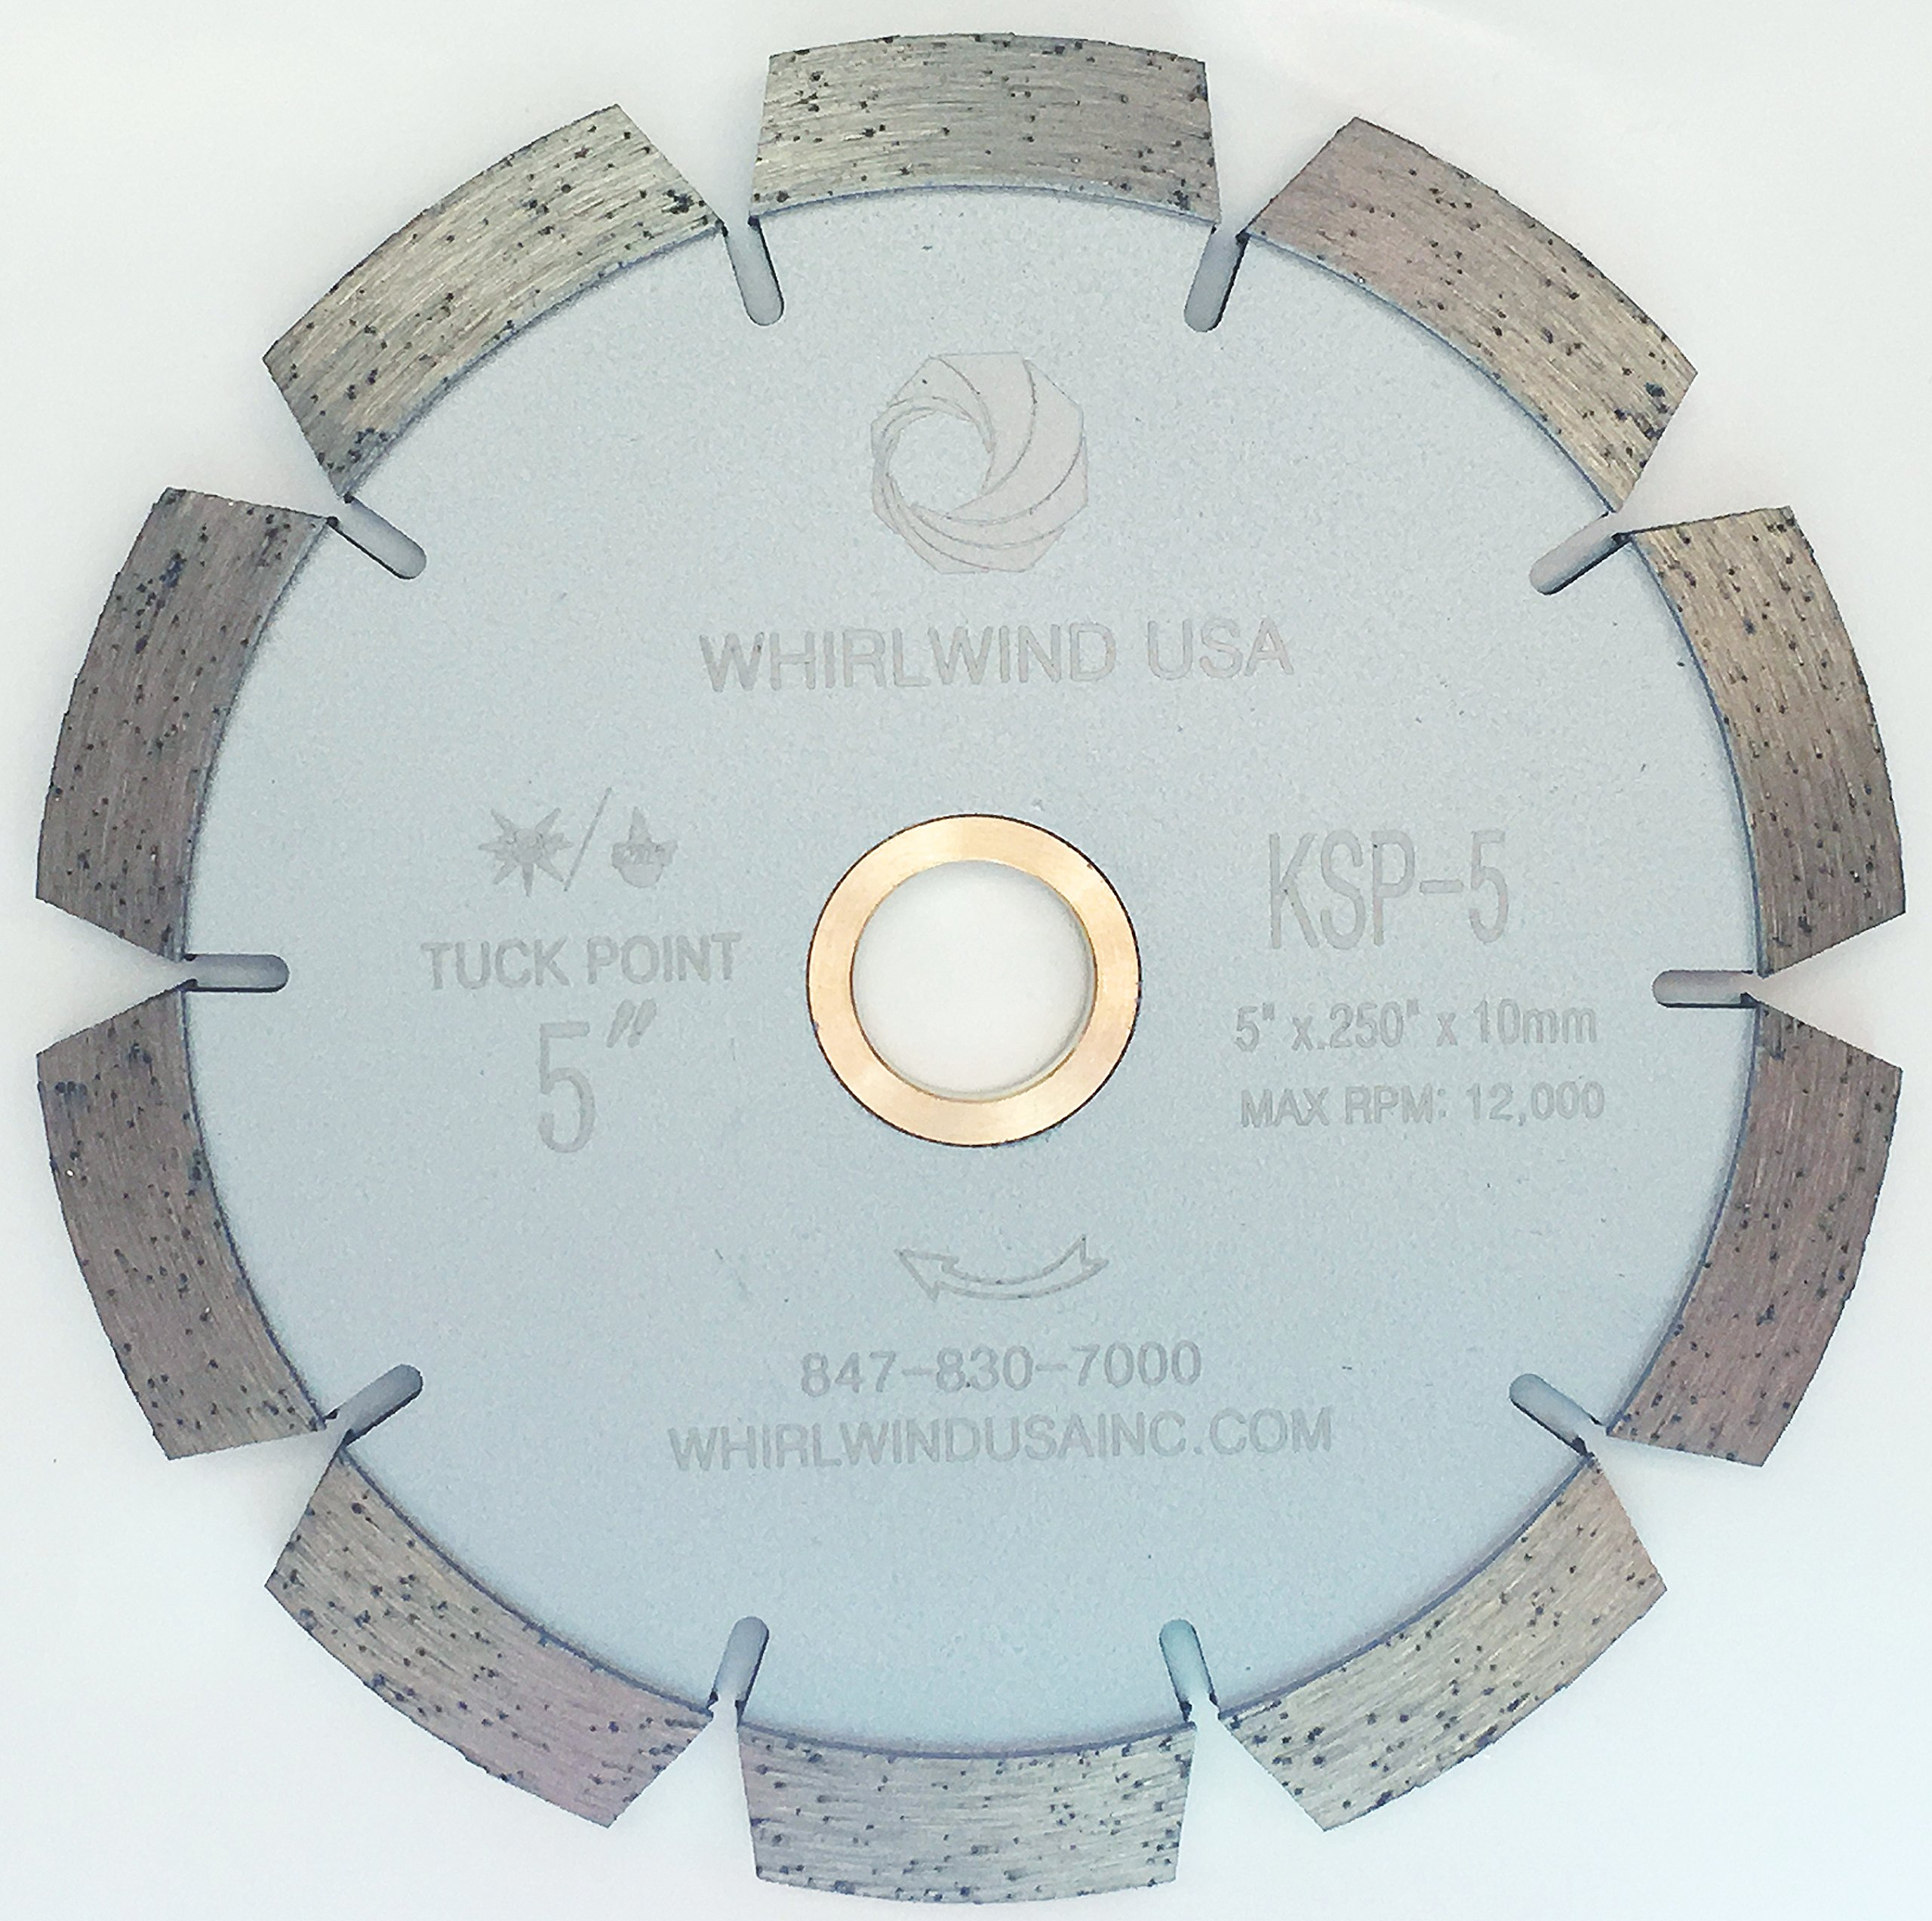 Whirlwind USA KSP 5-Inch Dry or Wet Cutting Standard Tuck Point Blade for Concrete Mortar (Factory Direct Sale) (5'')